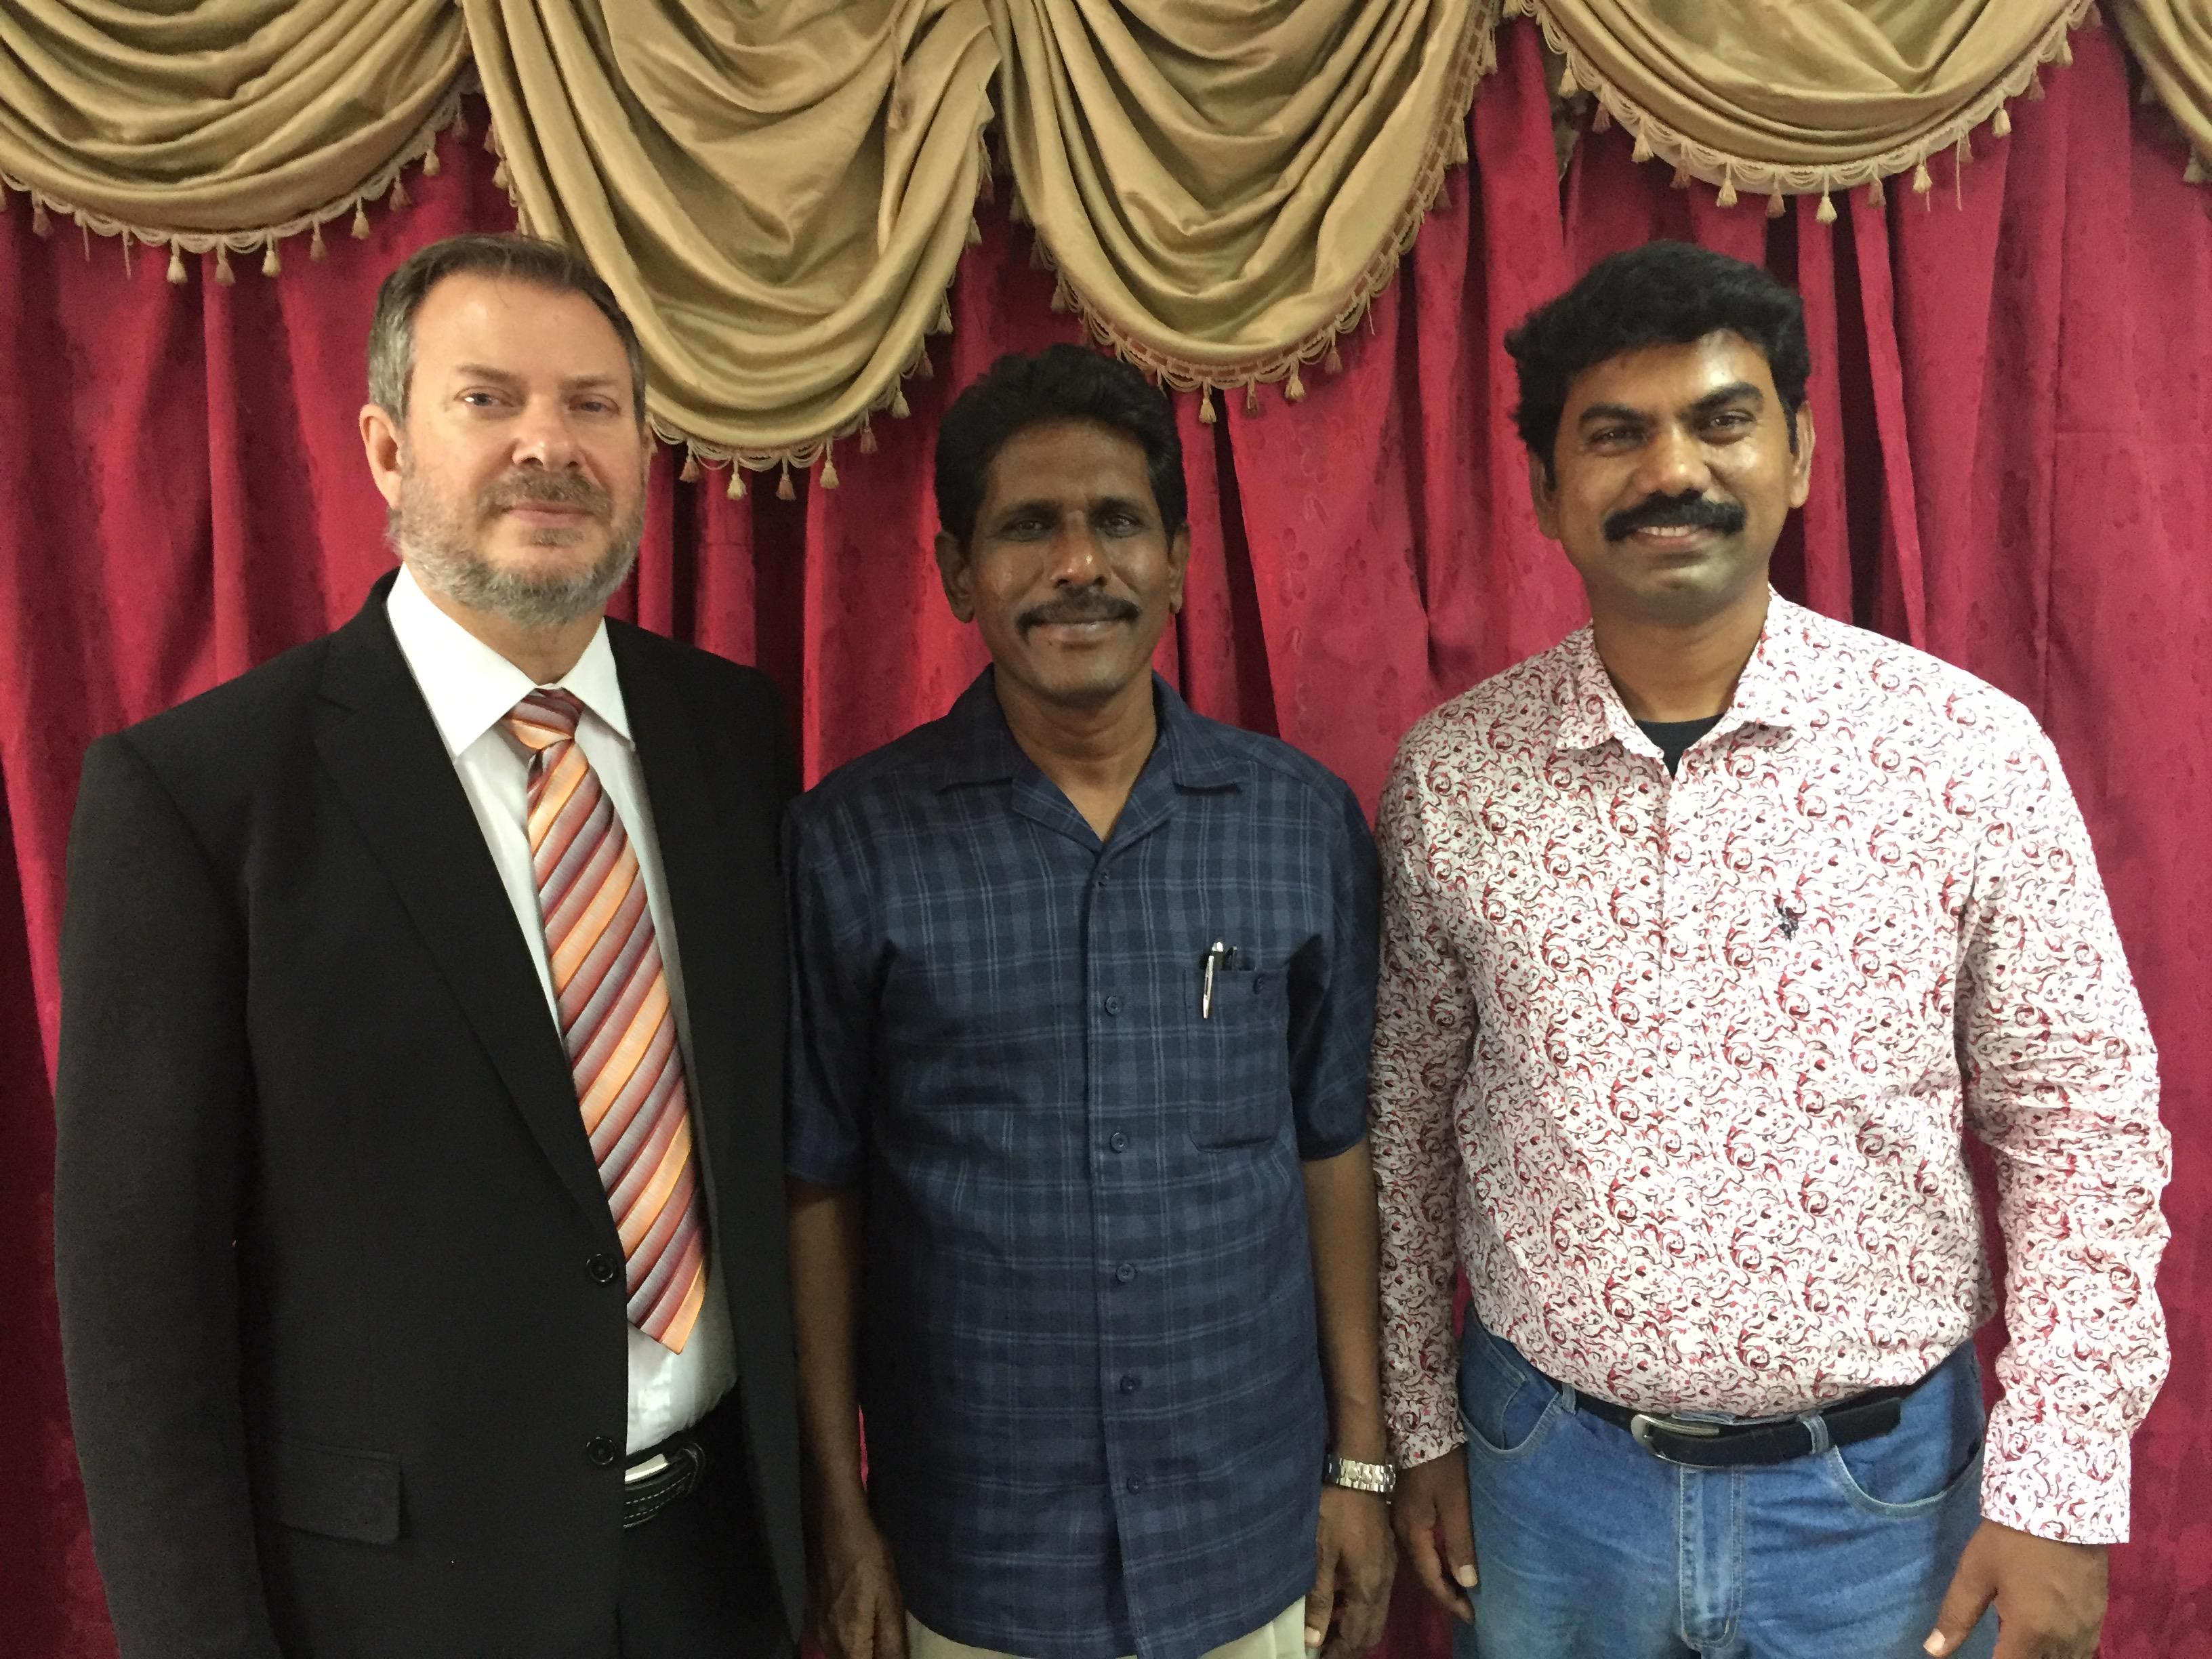 Jimmy, Pastor Jonathan and Pastor Joel in India.